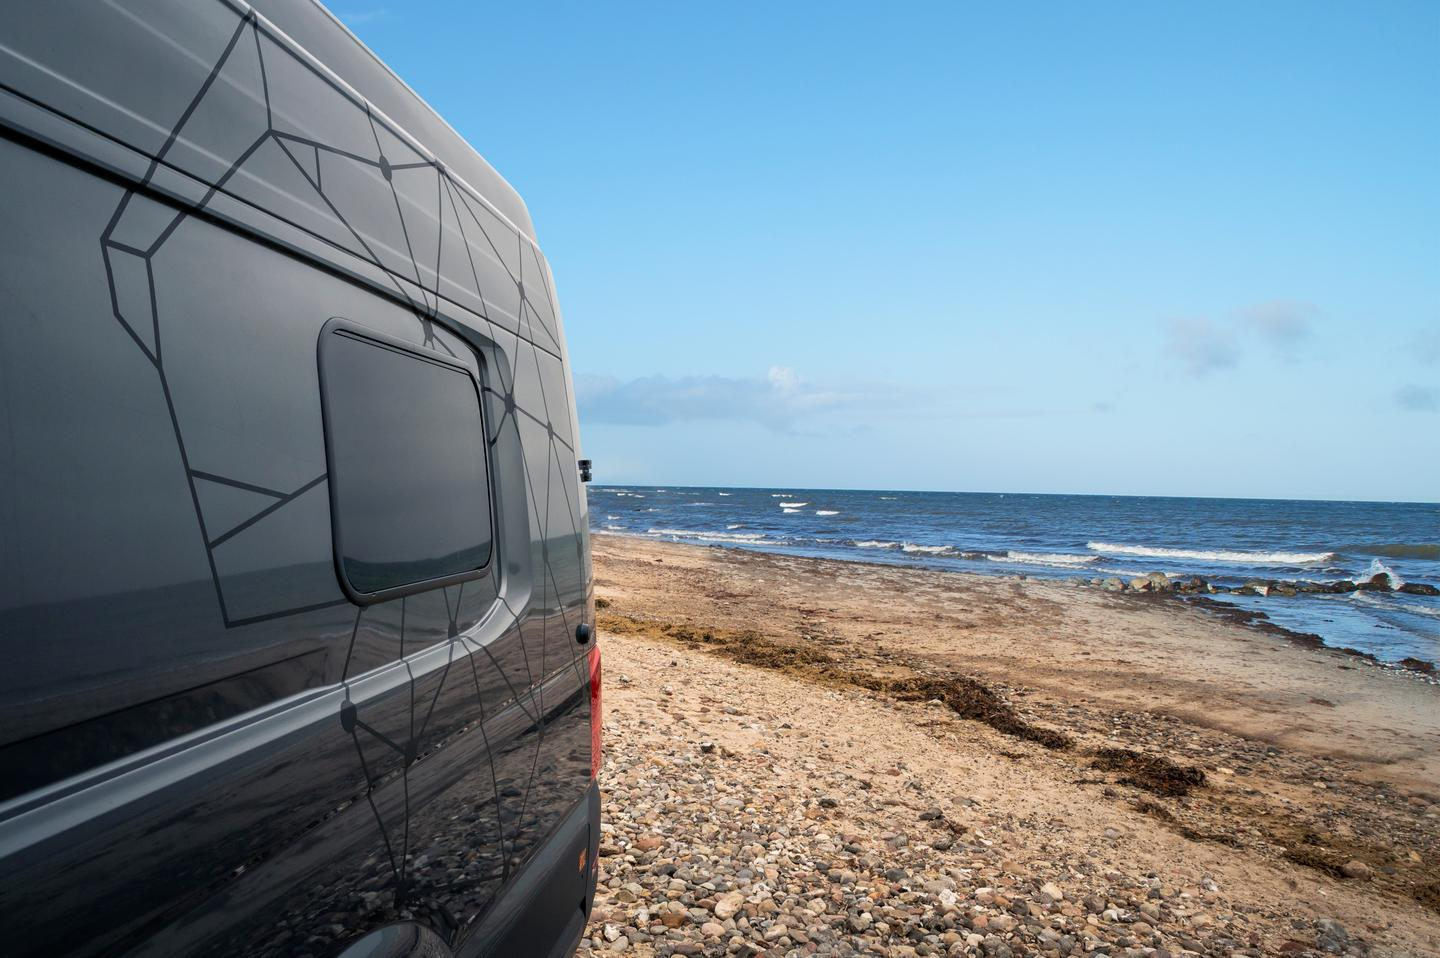 Hamburg-based Loef has created a stylish, luxurious camper van for short road trips and longterm travel